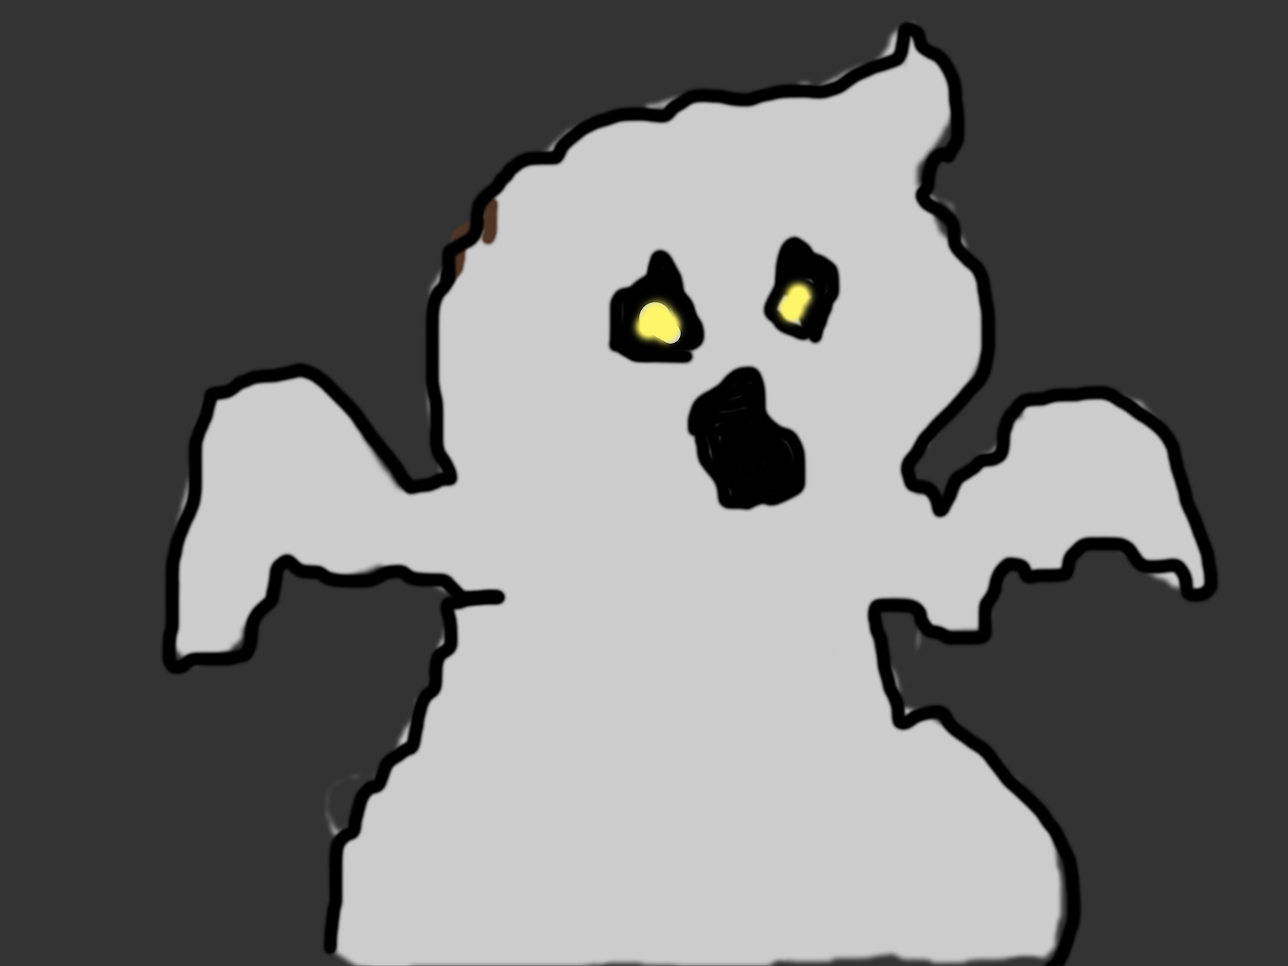 graphic of a Halloween ghost